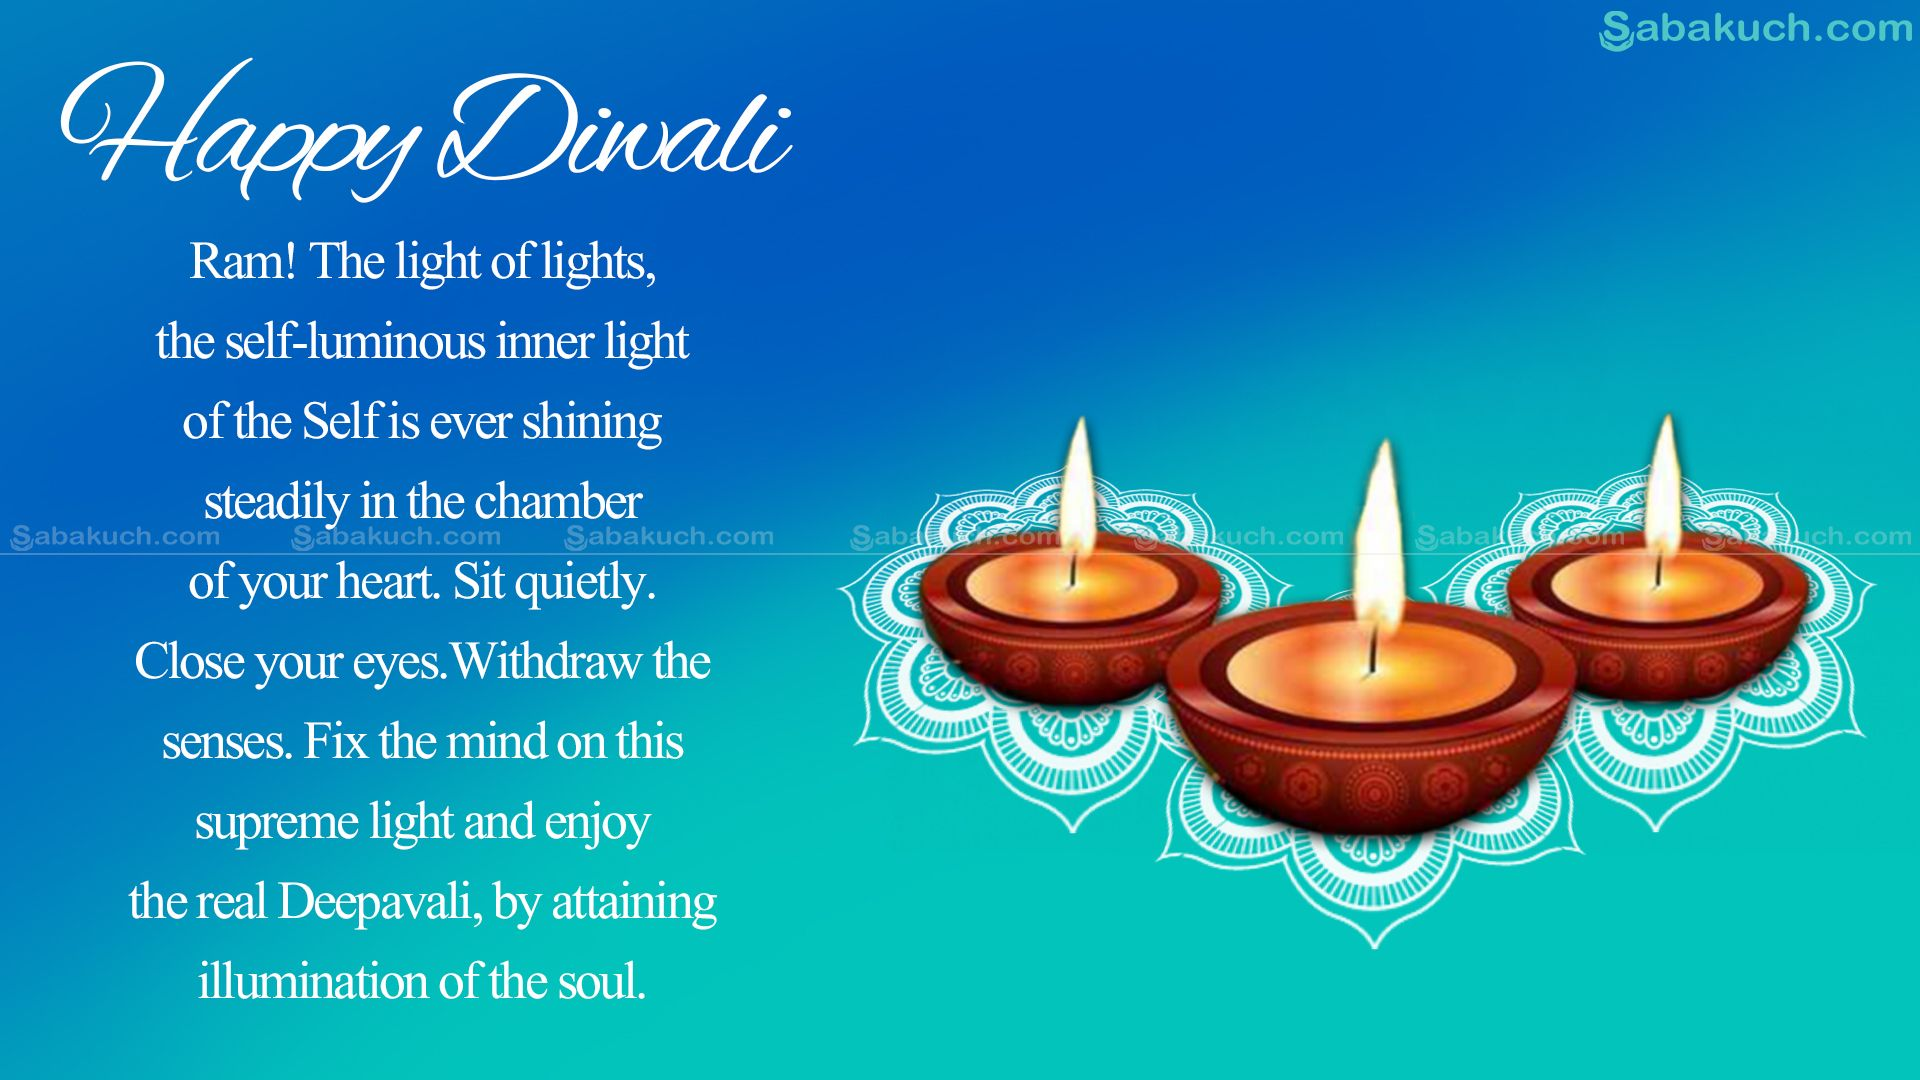 Get diwali wishes greeting cards at sabakuch images and send to diwali get diwali wishes greeting cards kristyandbryce Image collections